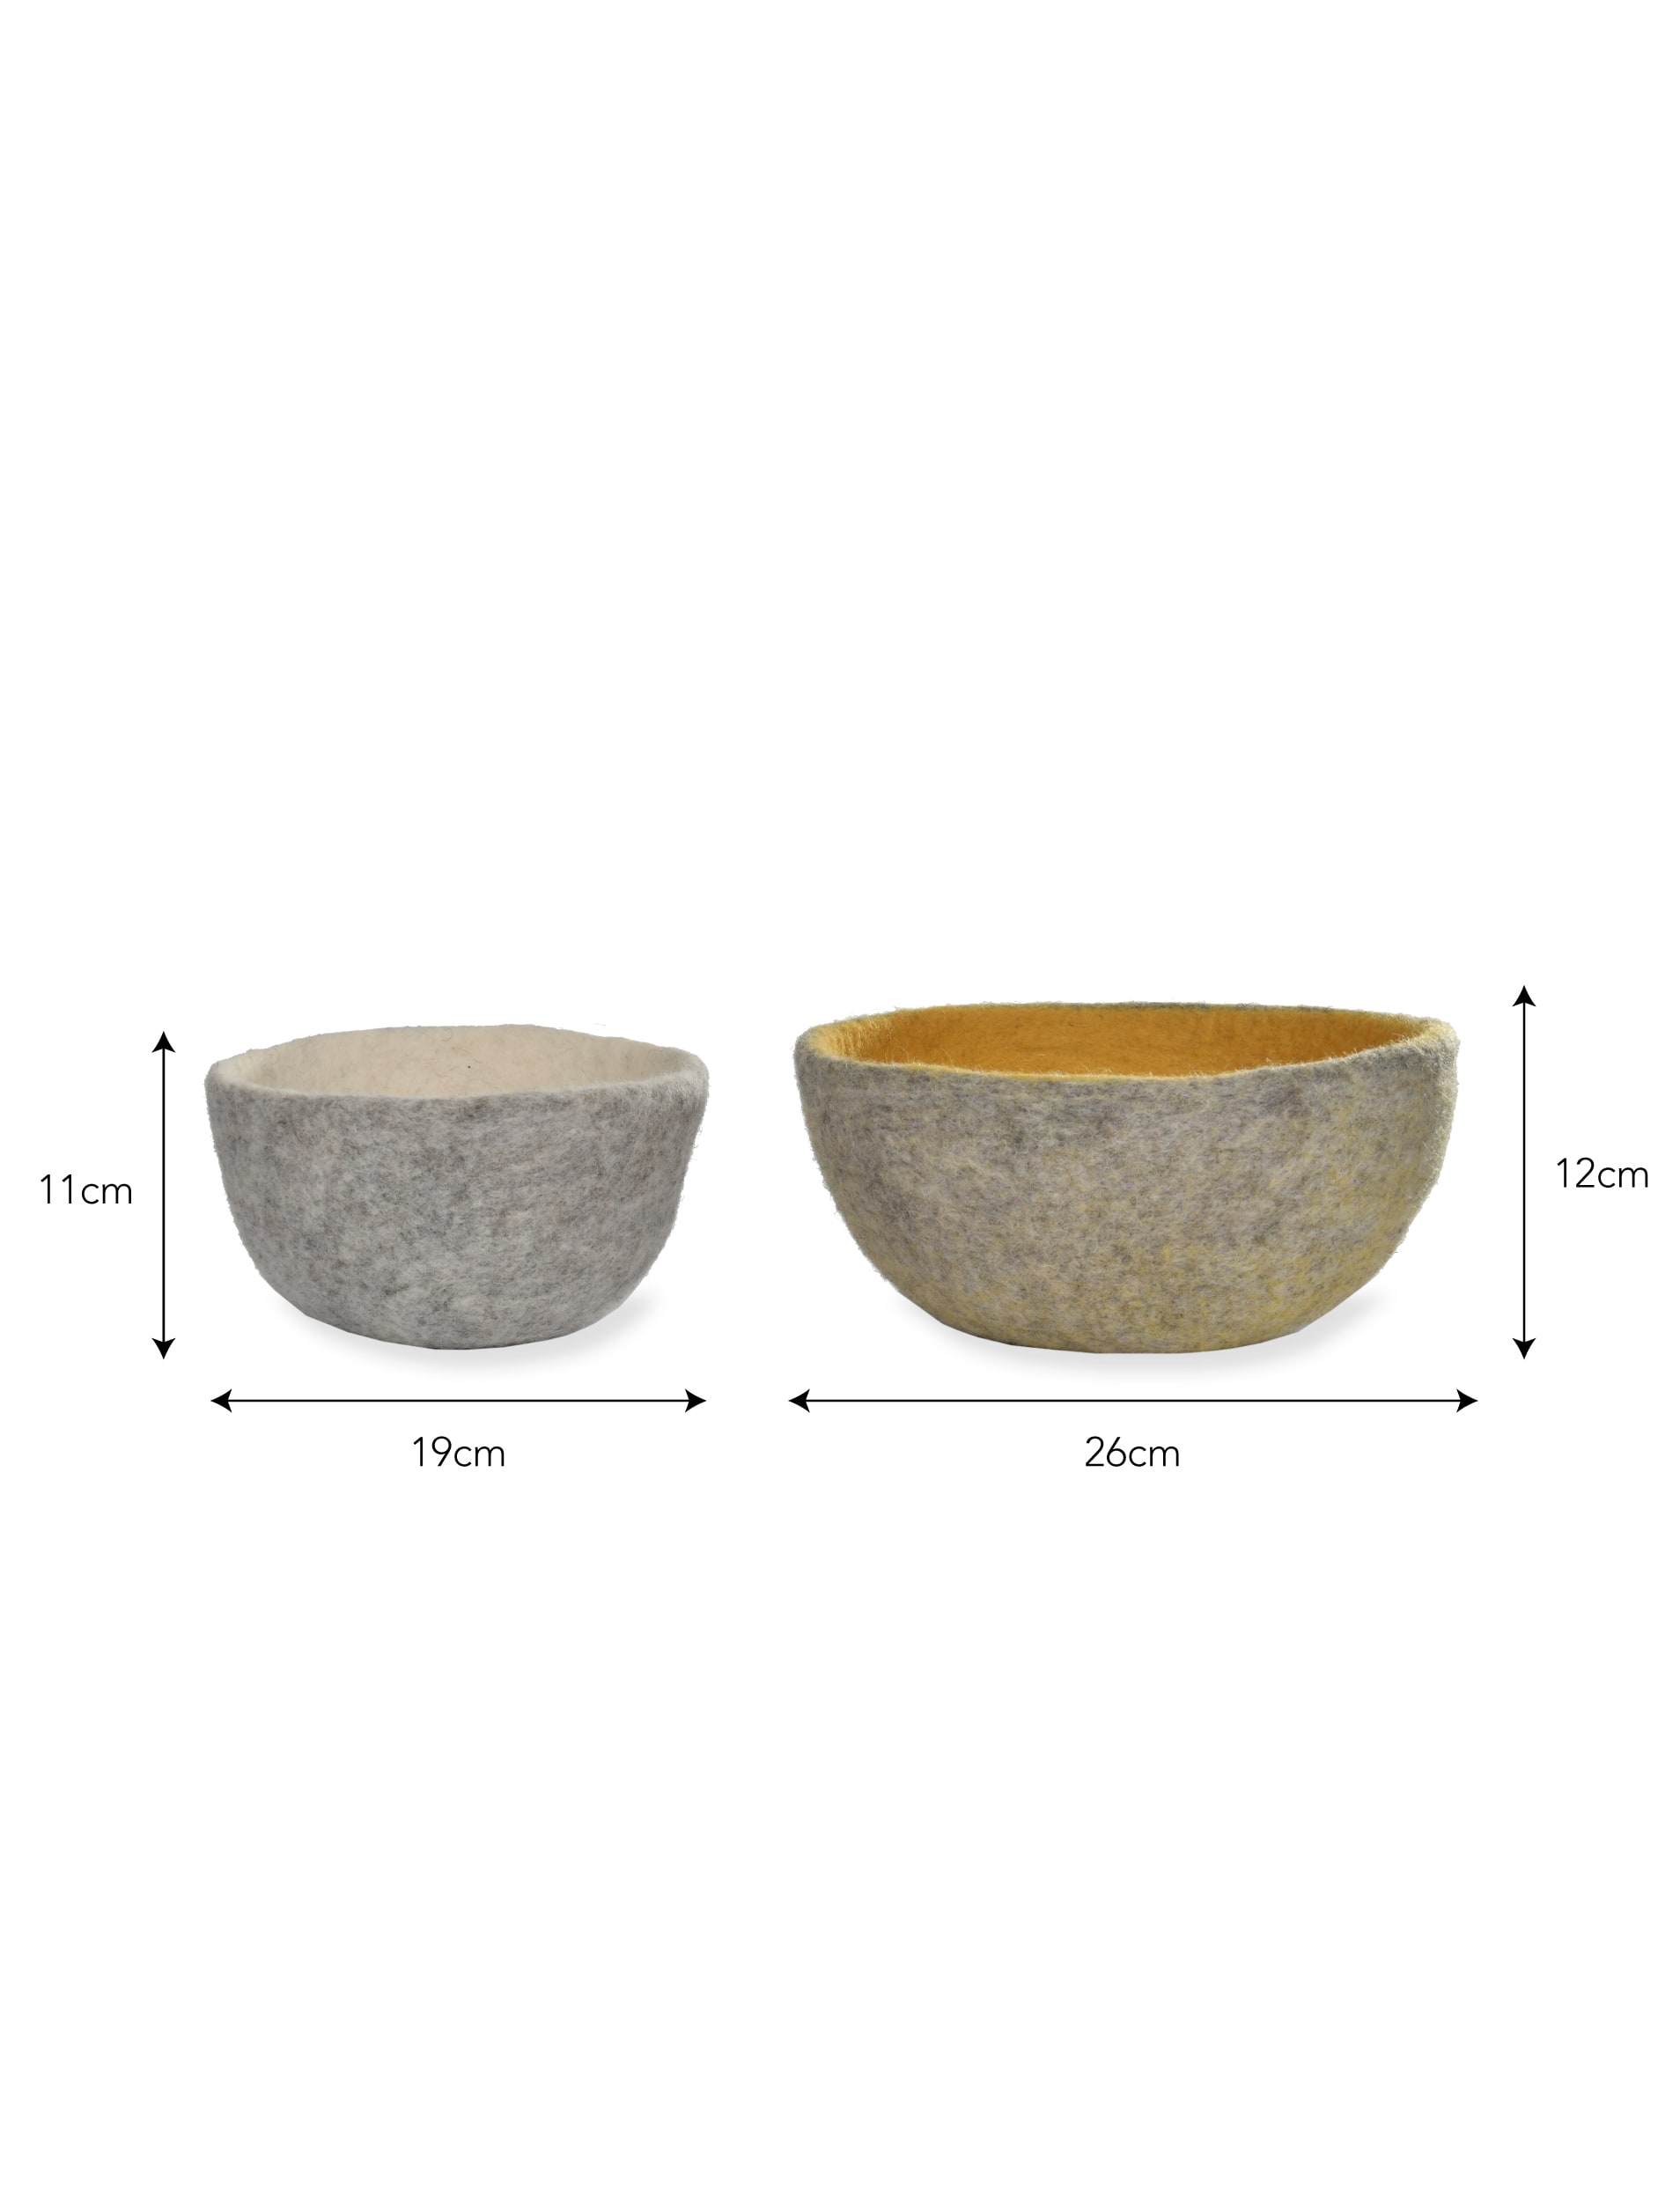 Fairtrade Felt Set of 2 Southwold Storage Bowls in Grey, Yellow and White | Garden Trading